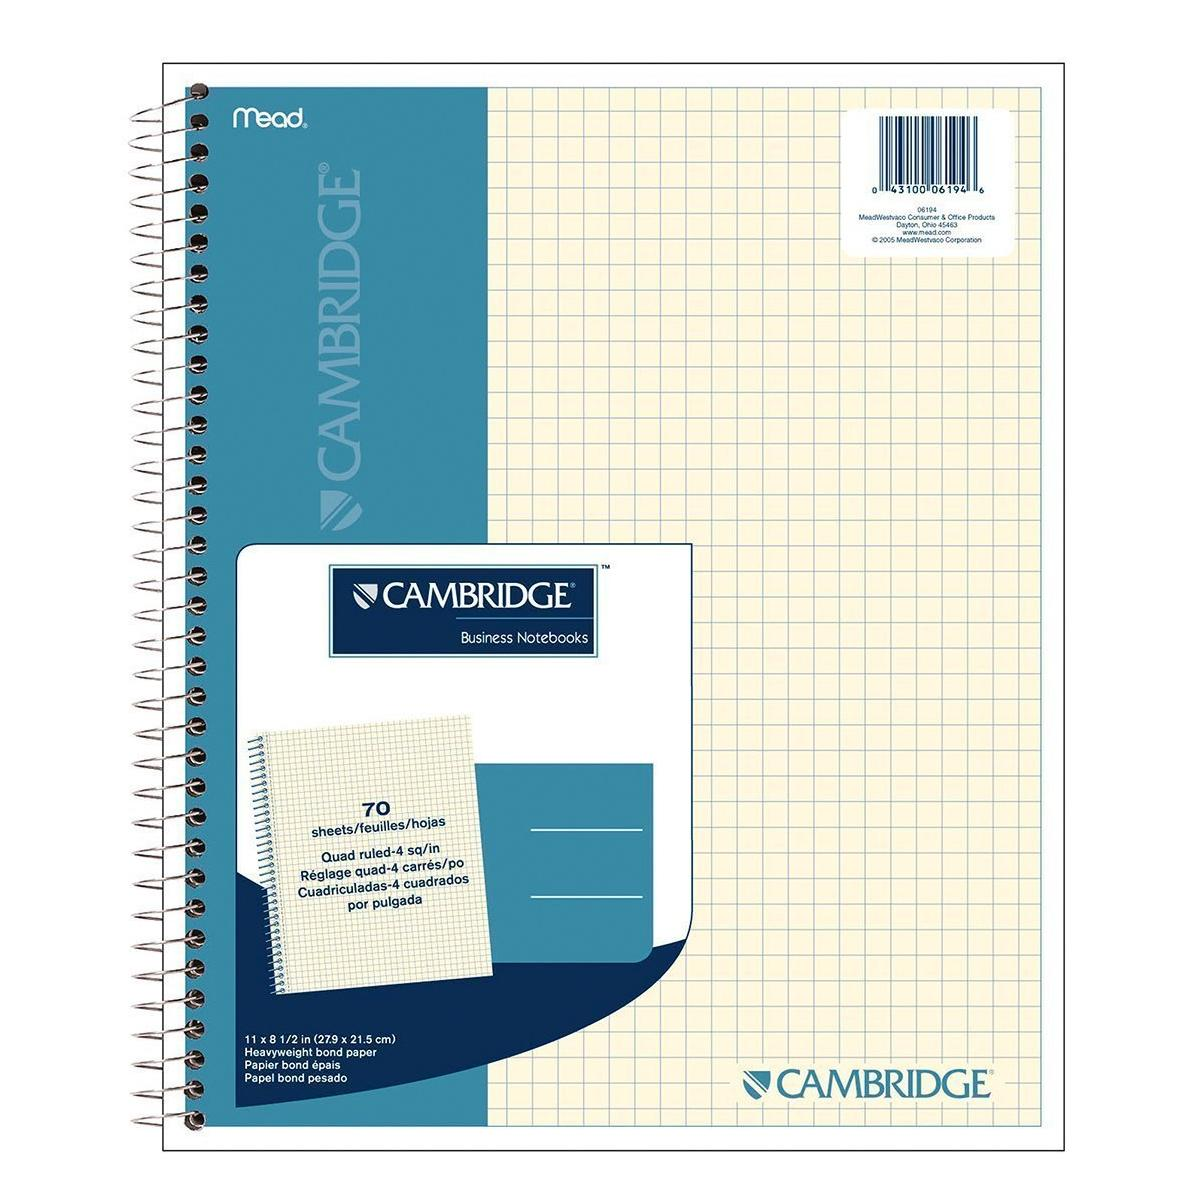 Amazon.com : Cambridge Quad Wirebound Notebook 70ct (06194 ...